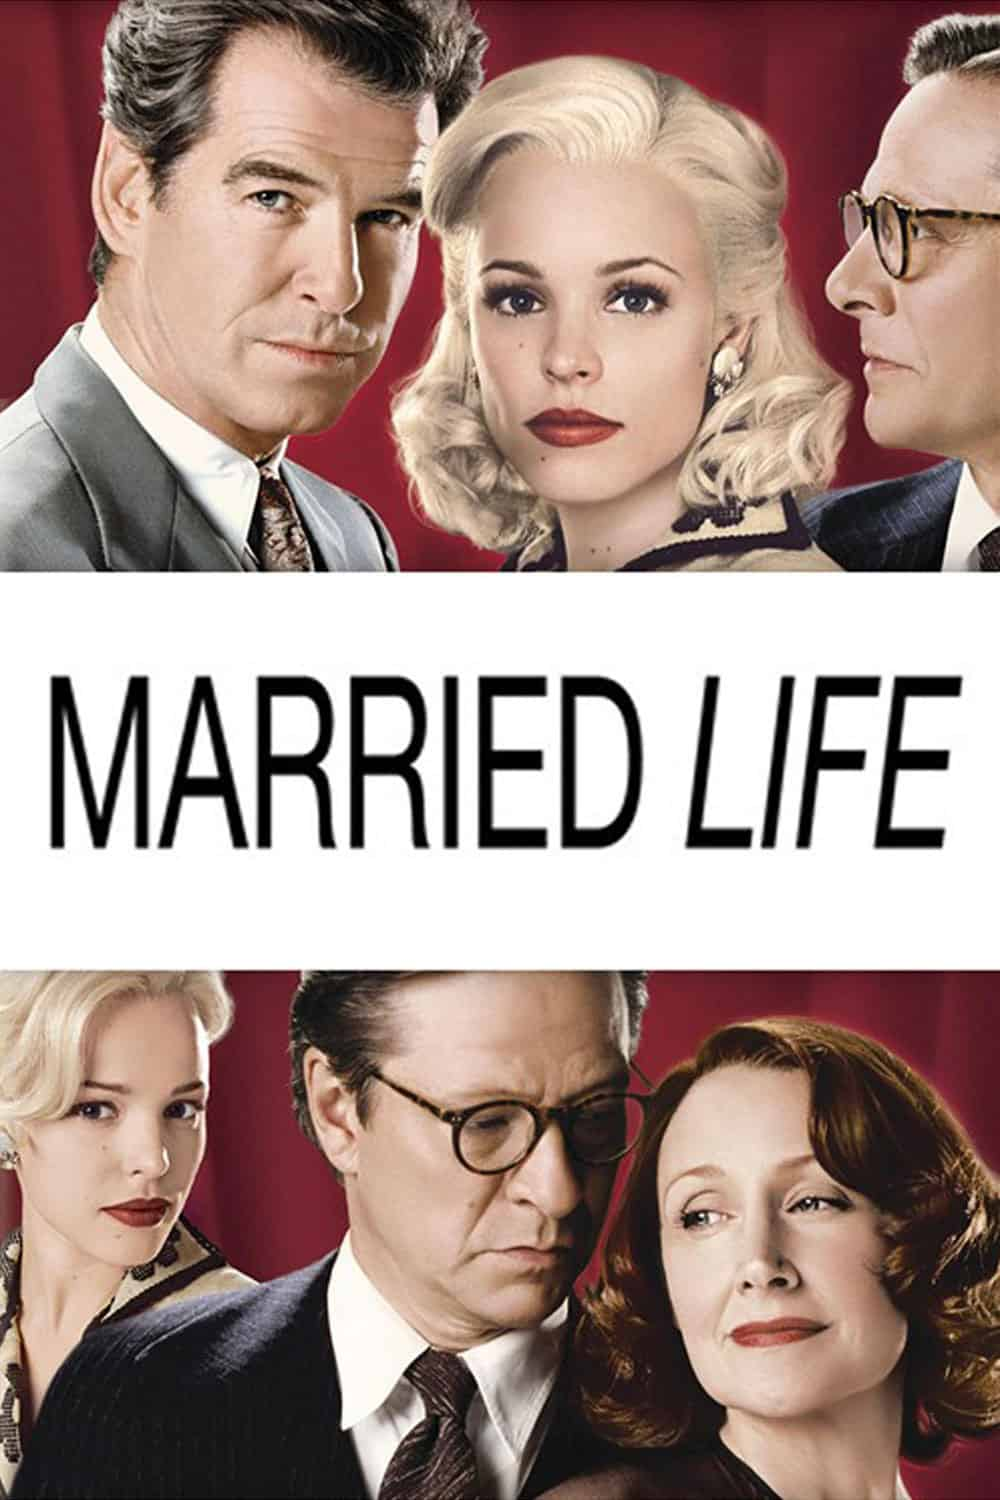 Married Life, 2007